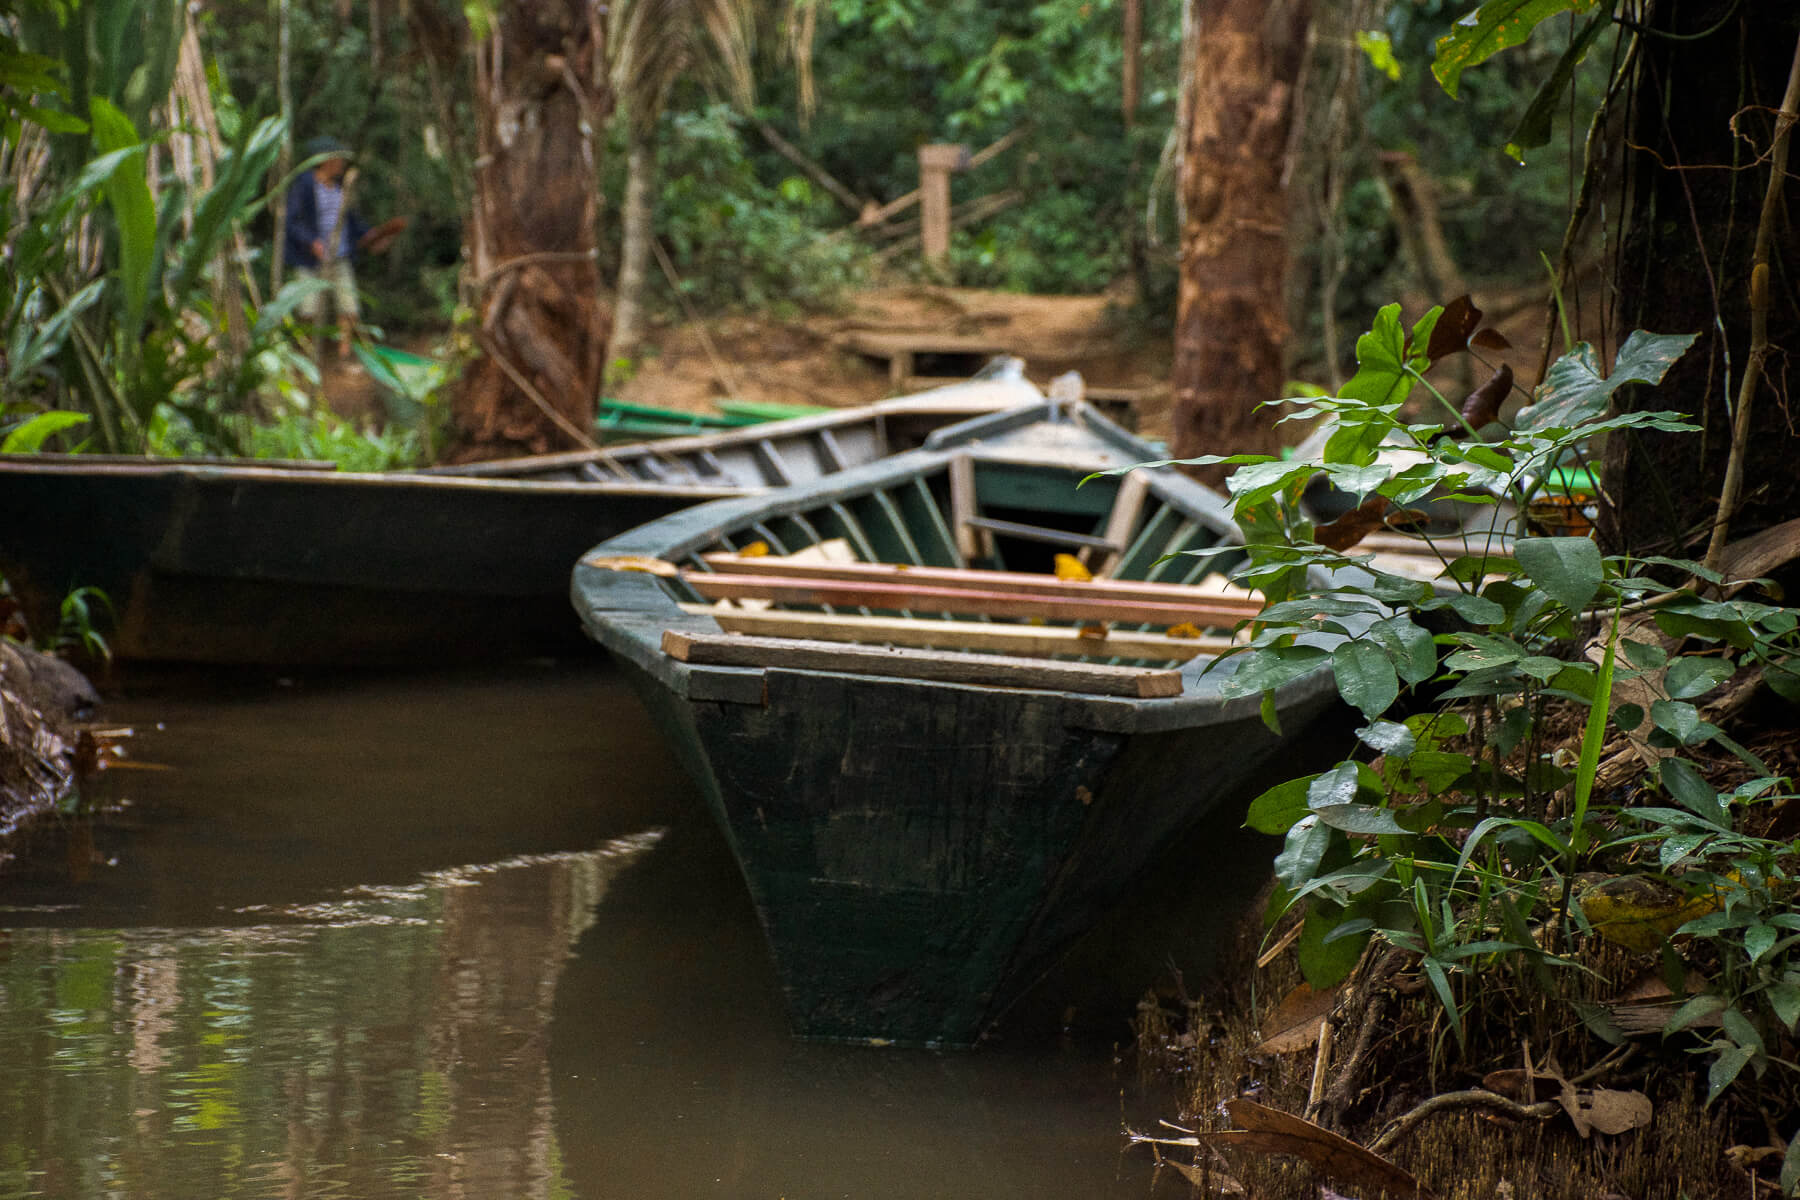 2 river canoes banked in the water within the rainforest